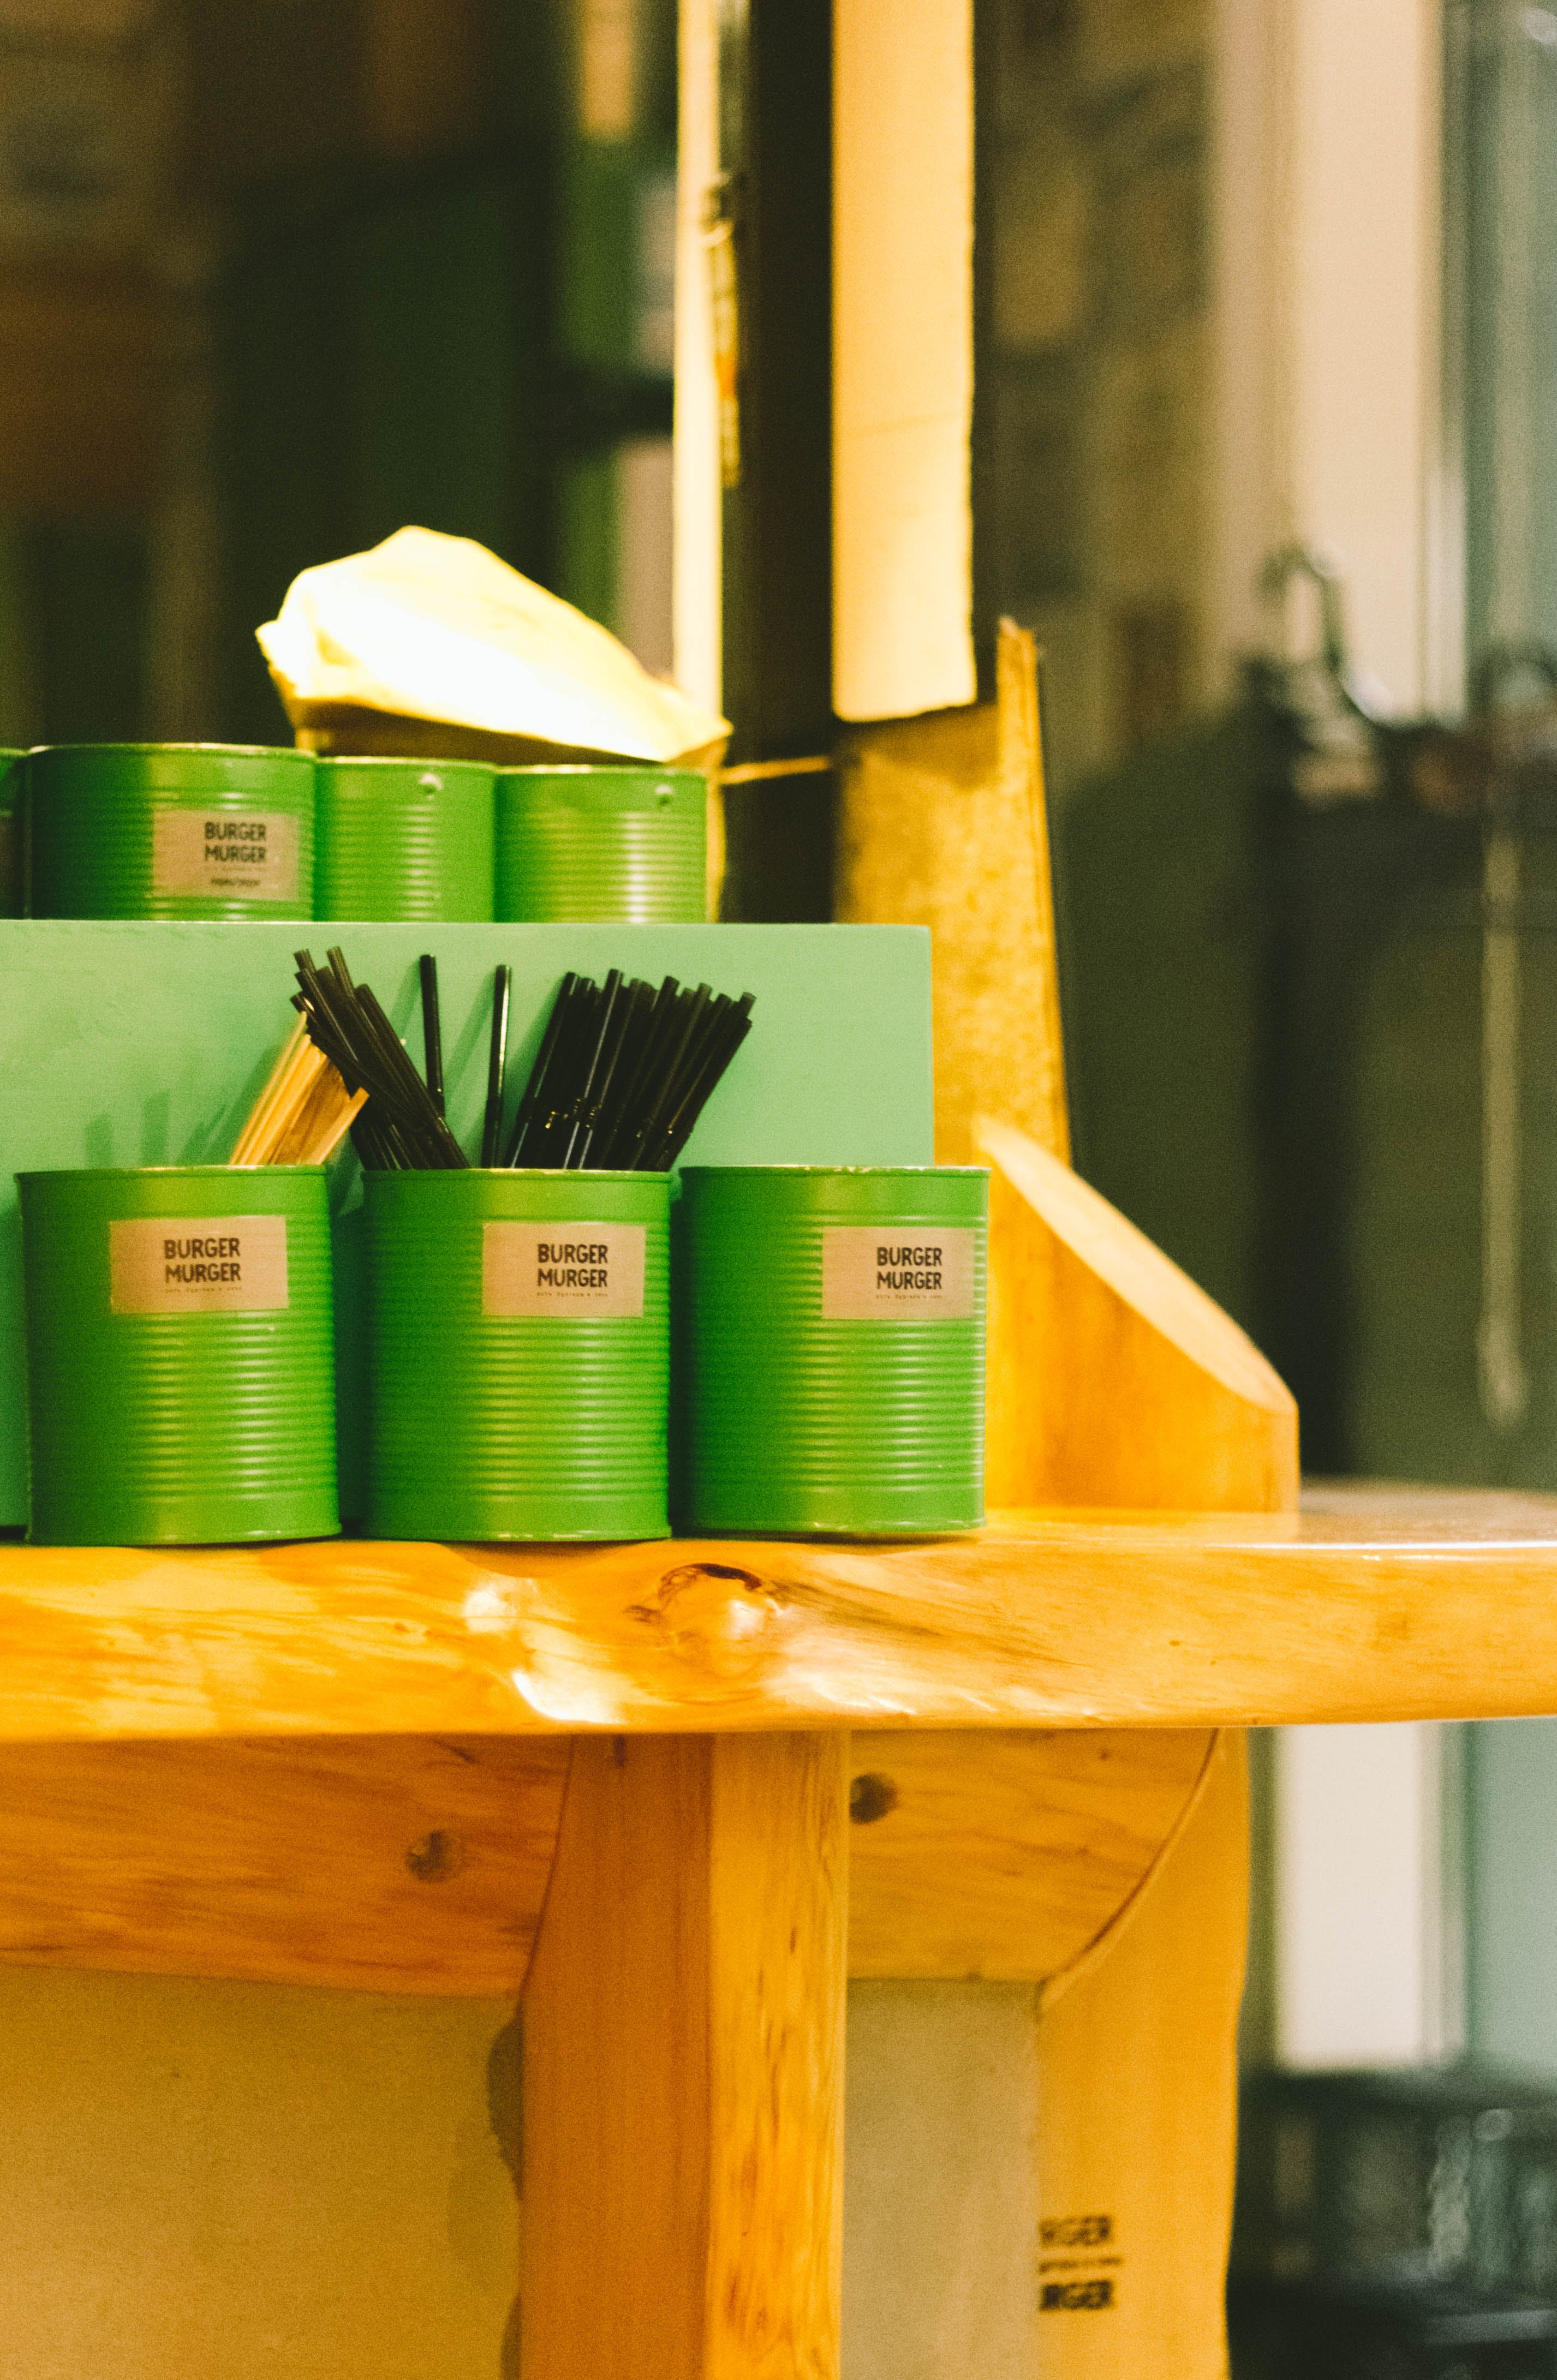 Six Green Tin Can Containers on Table